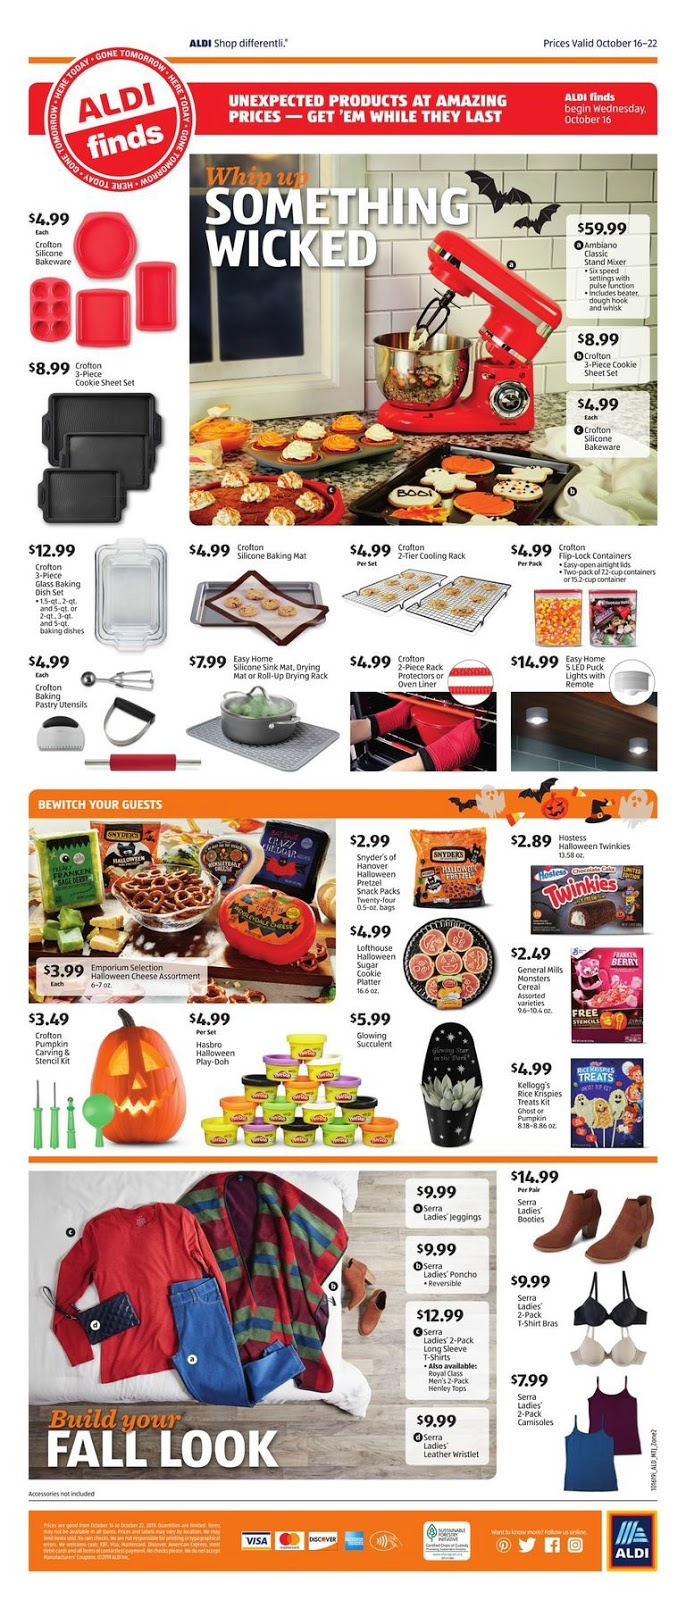 Aldi Ad 10 23 19 10 27 19 For Some And Aldi Ad 10 30 19